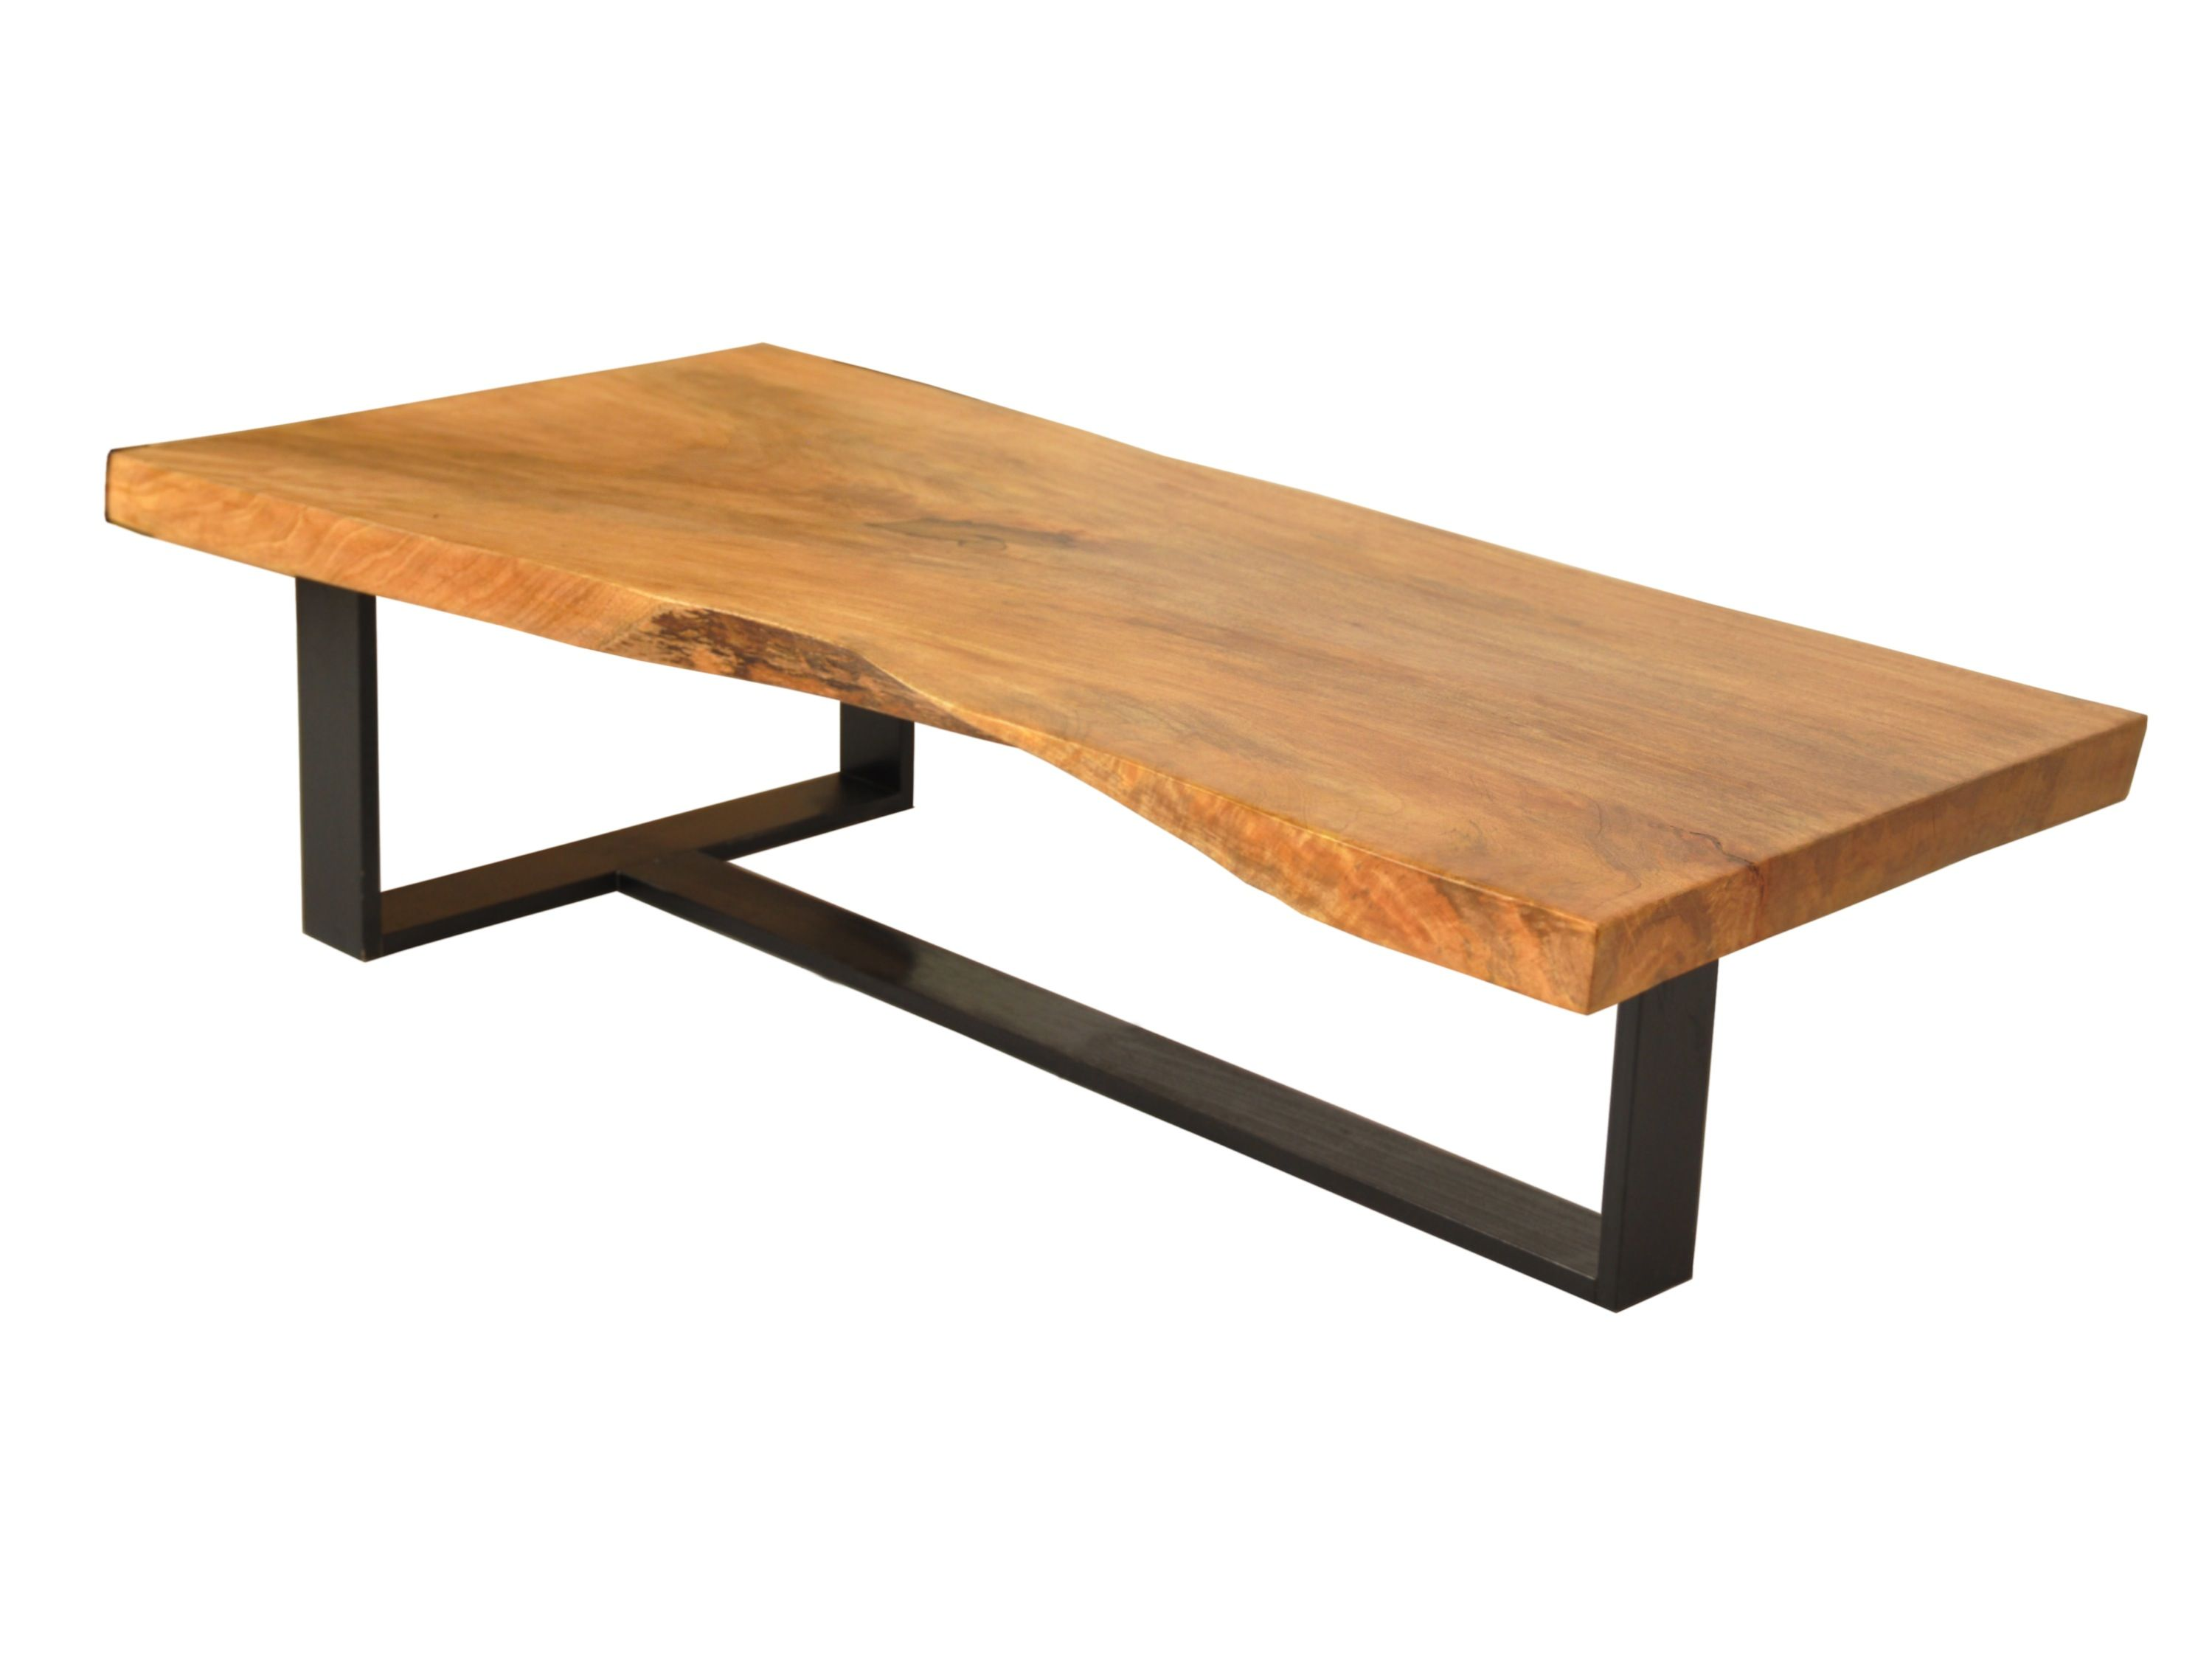 Single slab coffee table blackened metal base solid wood live single slab coffee table blackened metal base solid wood live edge coffee table made geotapseo Image collections